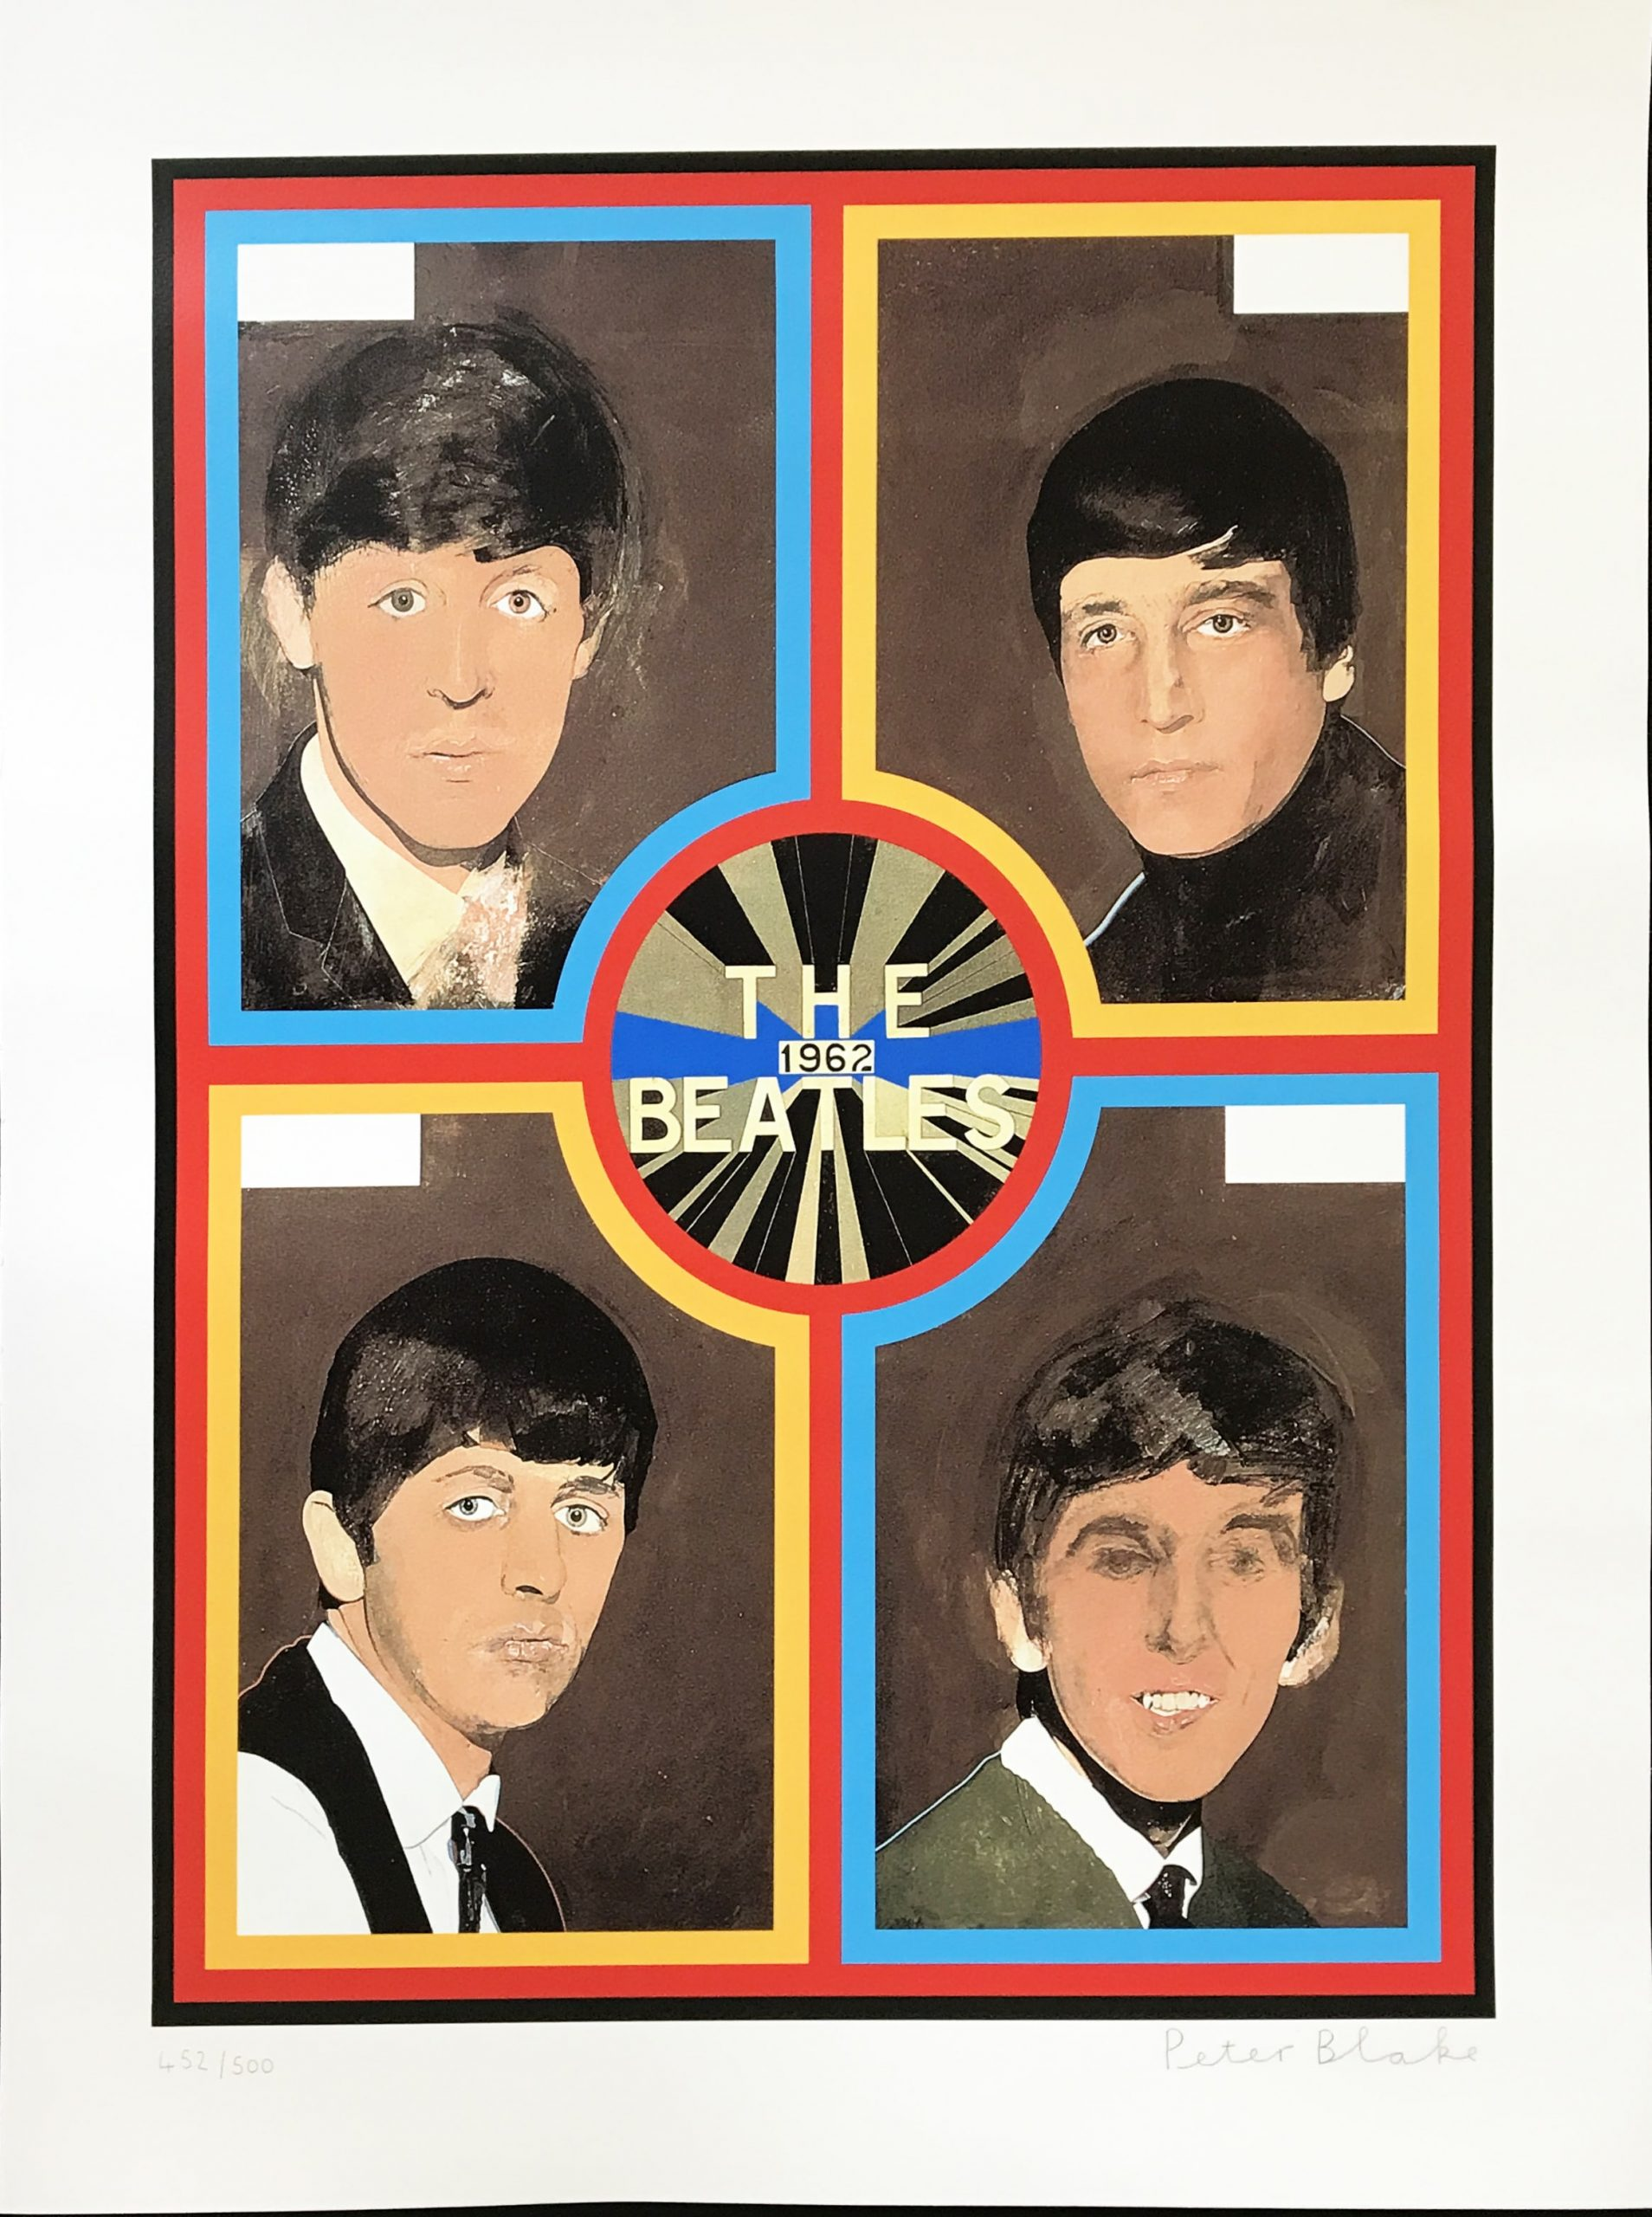 The Beatles, 1962 by Peter Blake